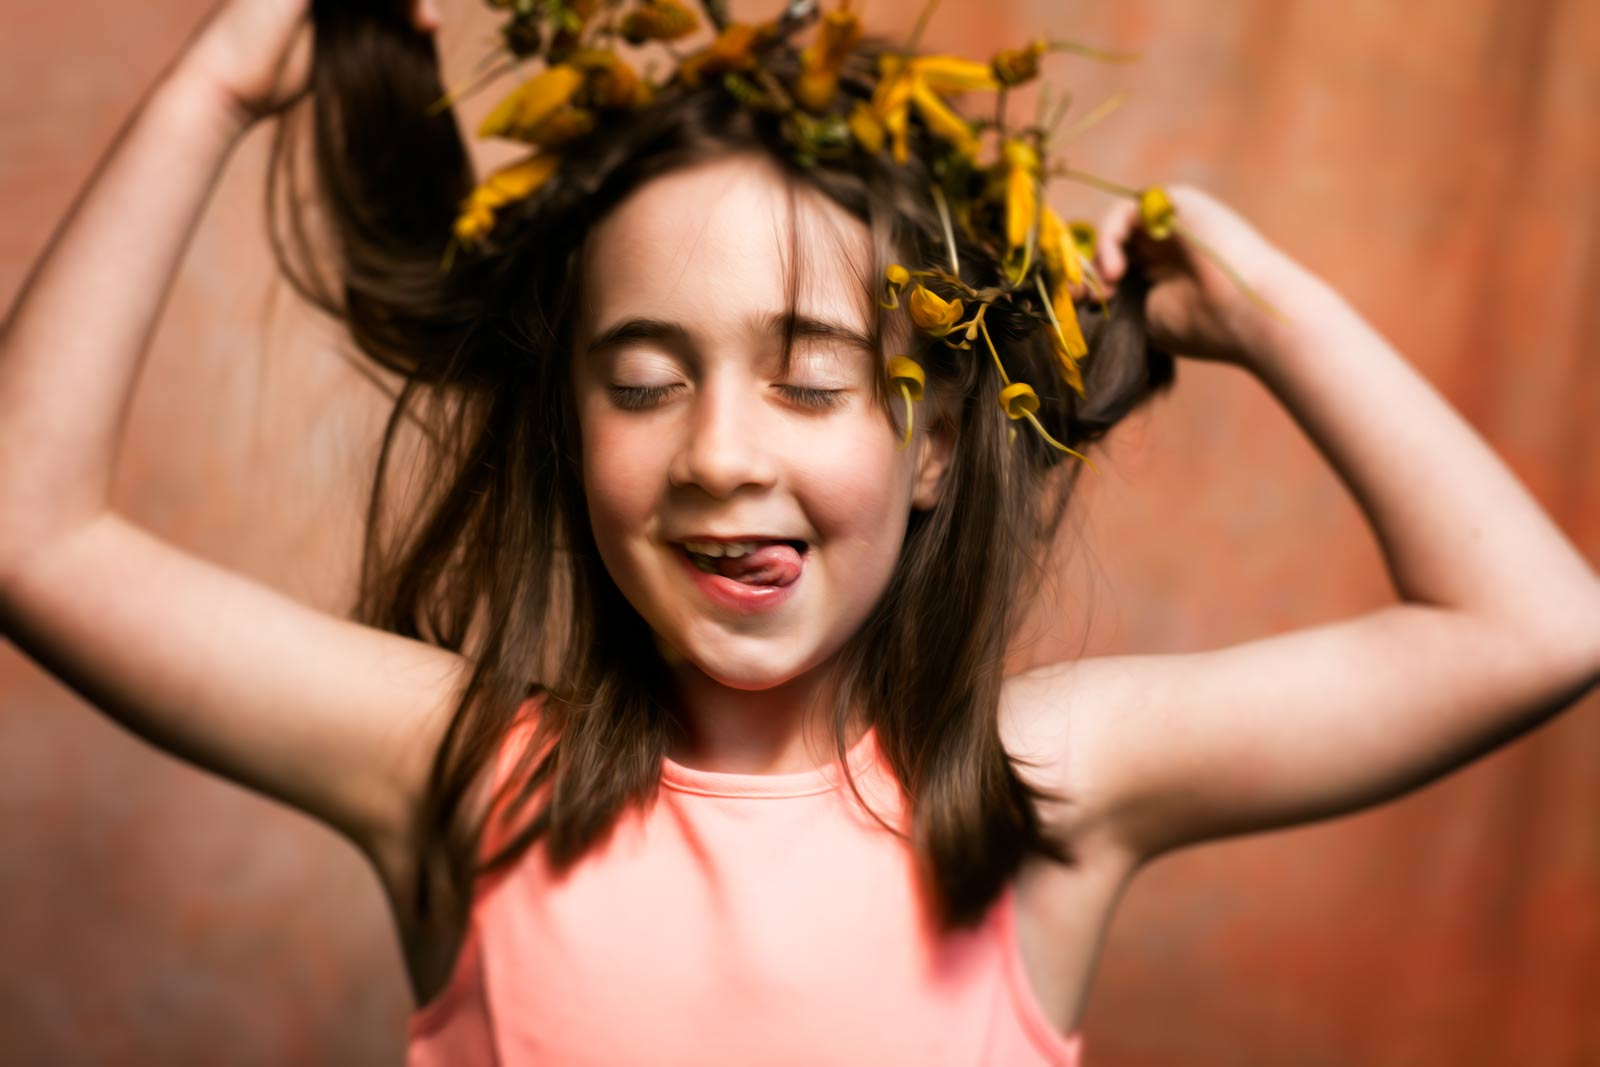 little girl sticking out her tounge wearing a flower crown grinning with her eyes closed holding her hair